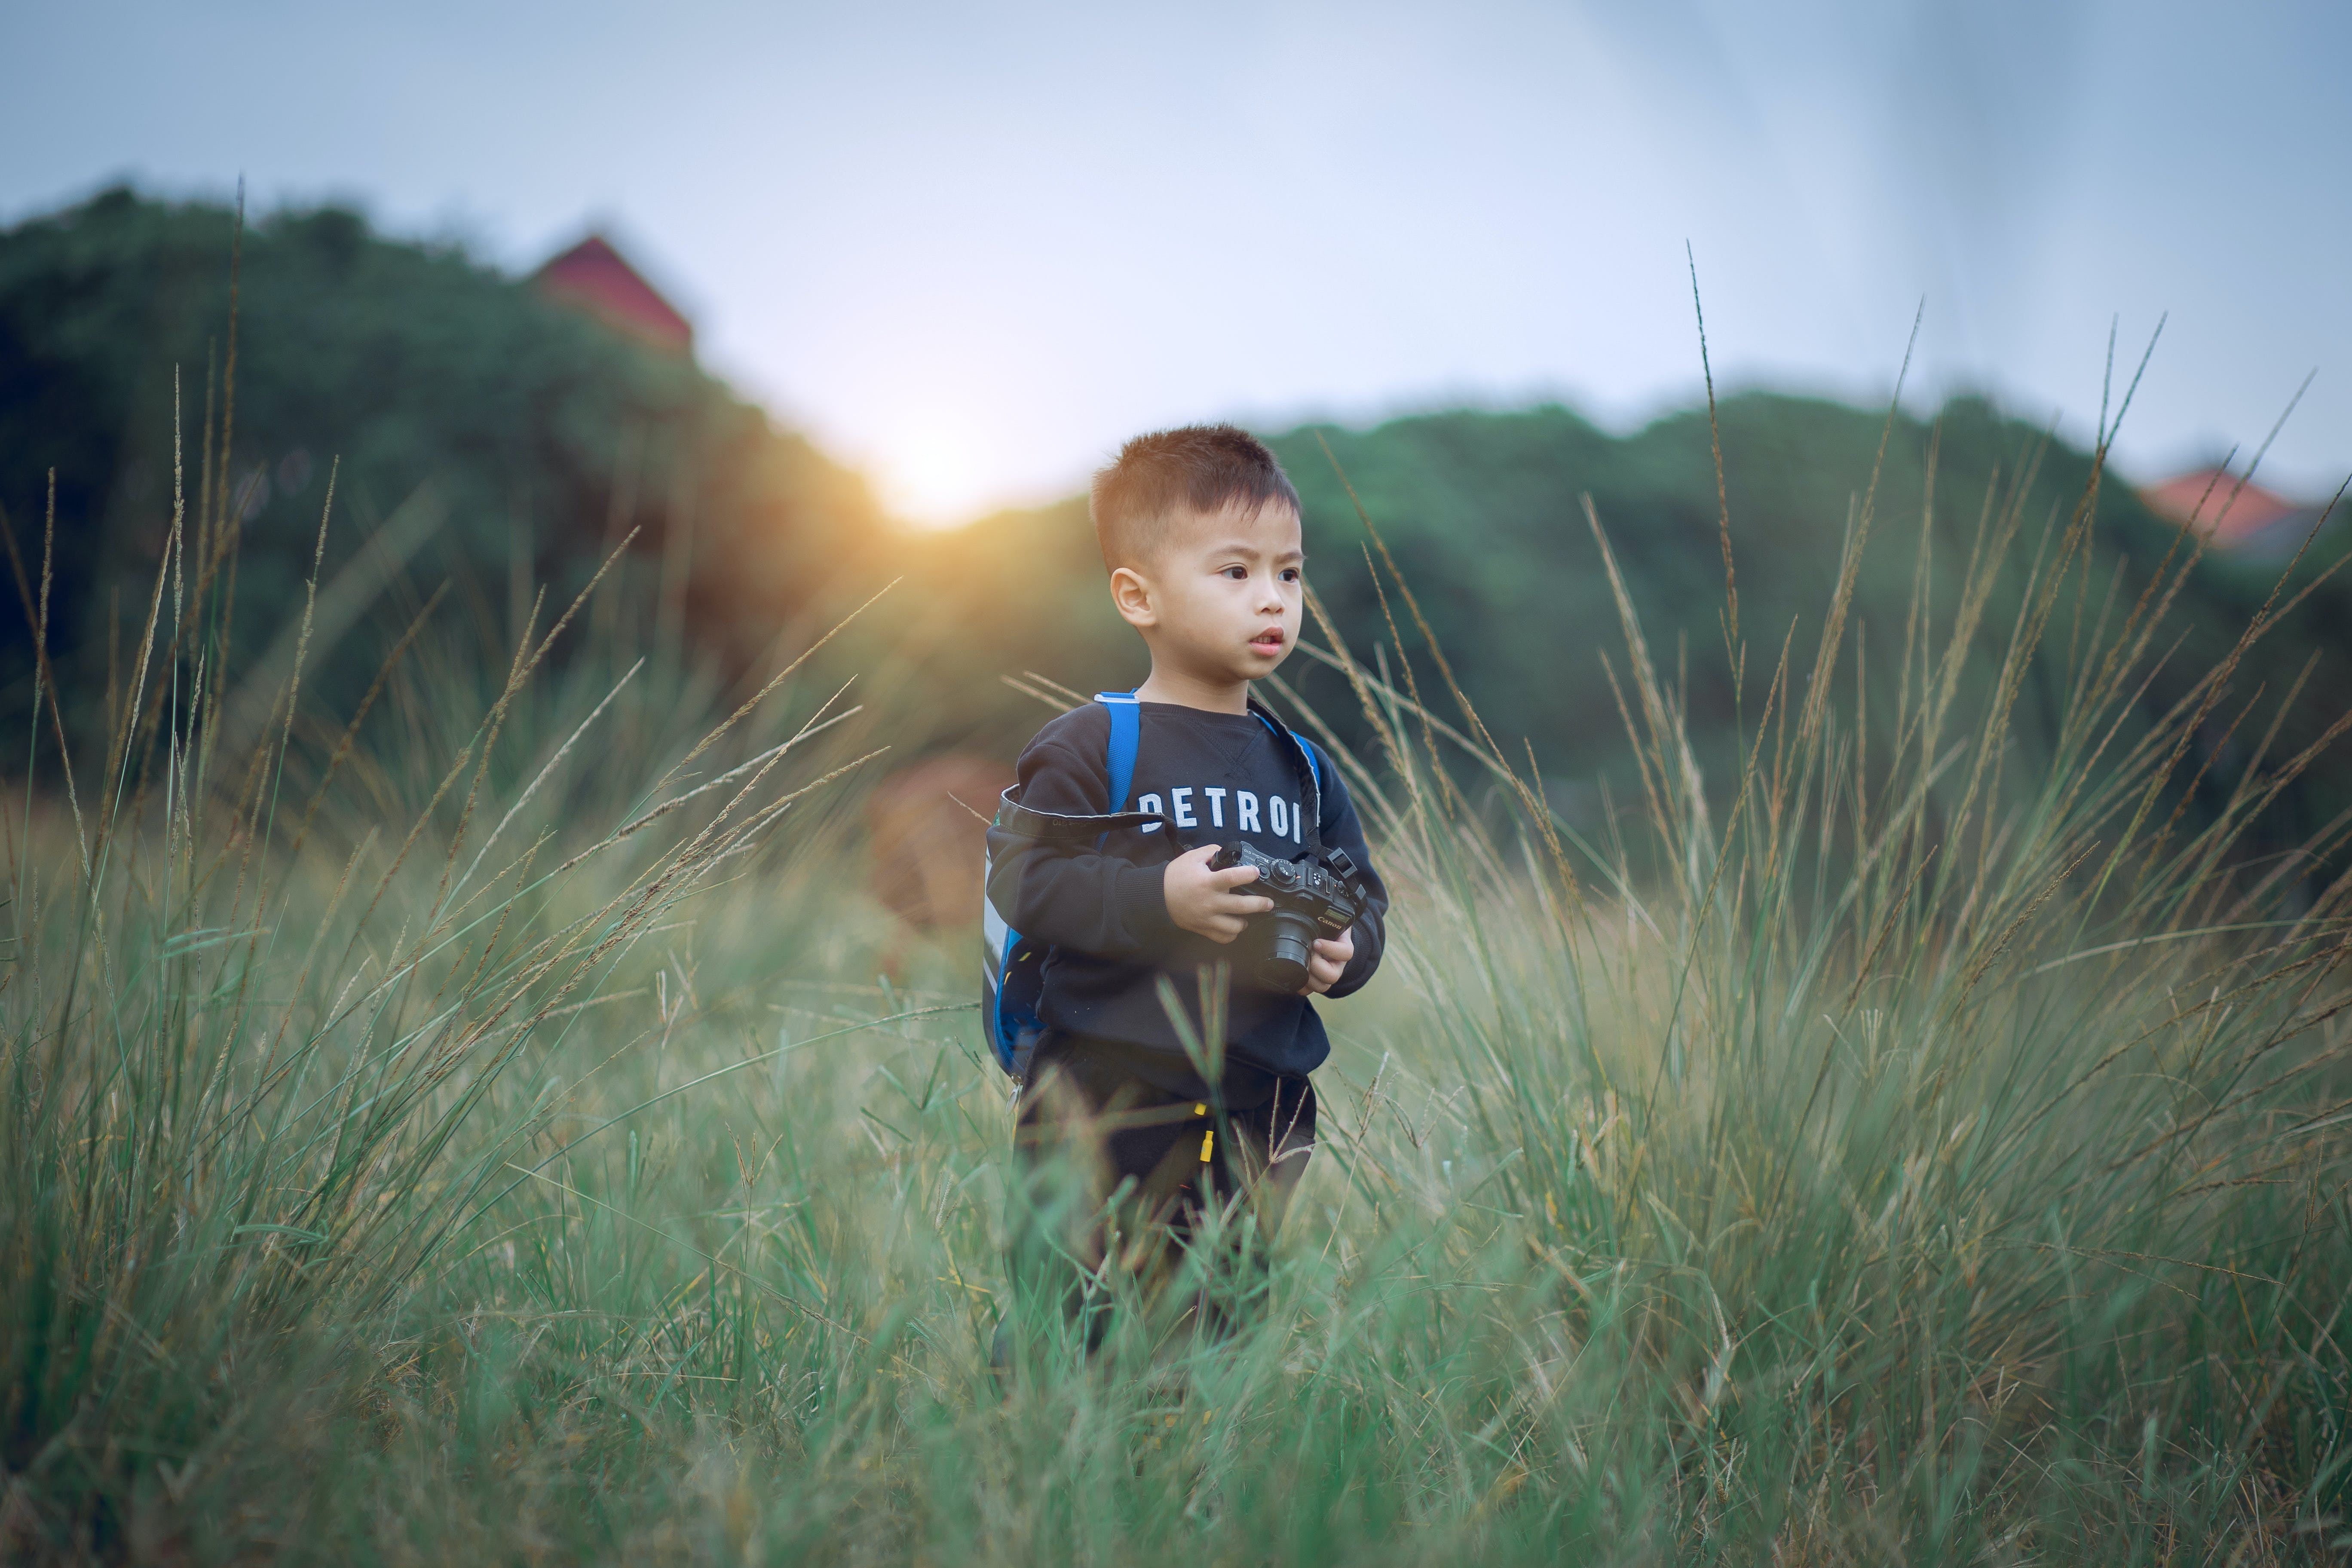 Shallow Focus Photography of Boy Standing on Green Grass Holding Camera